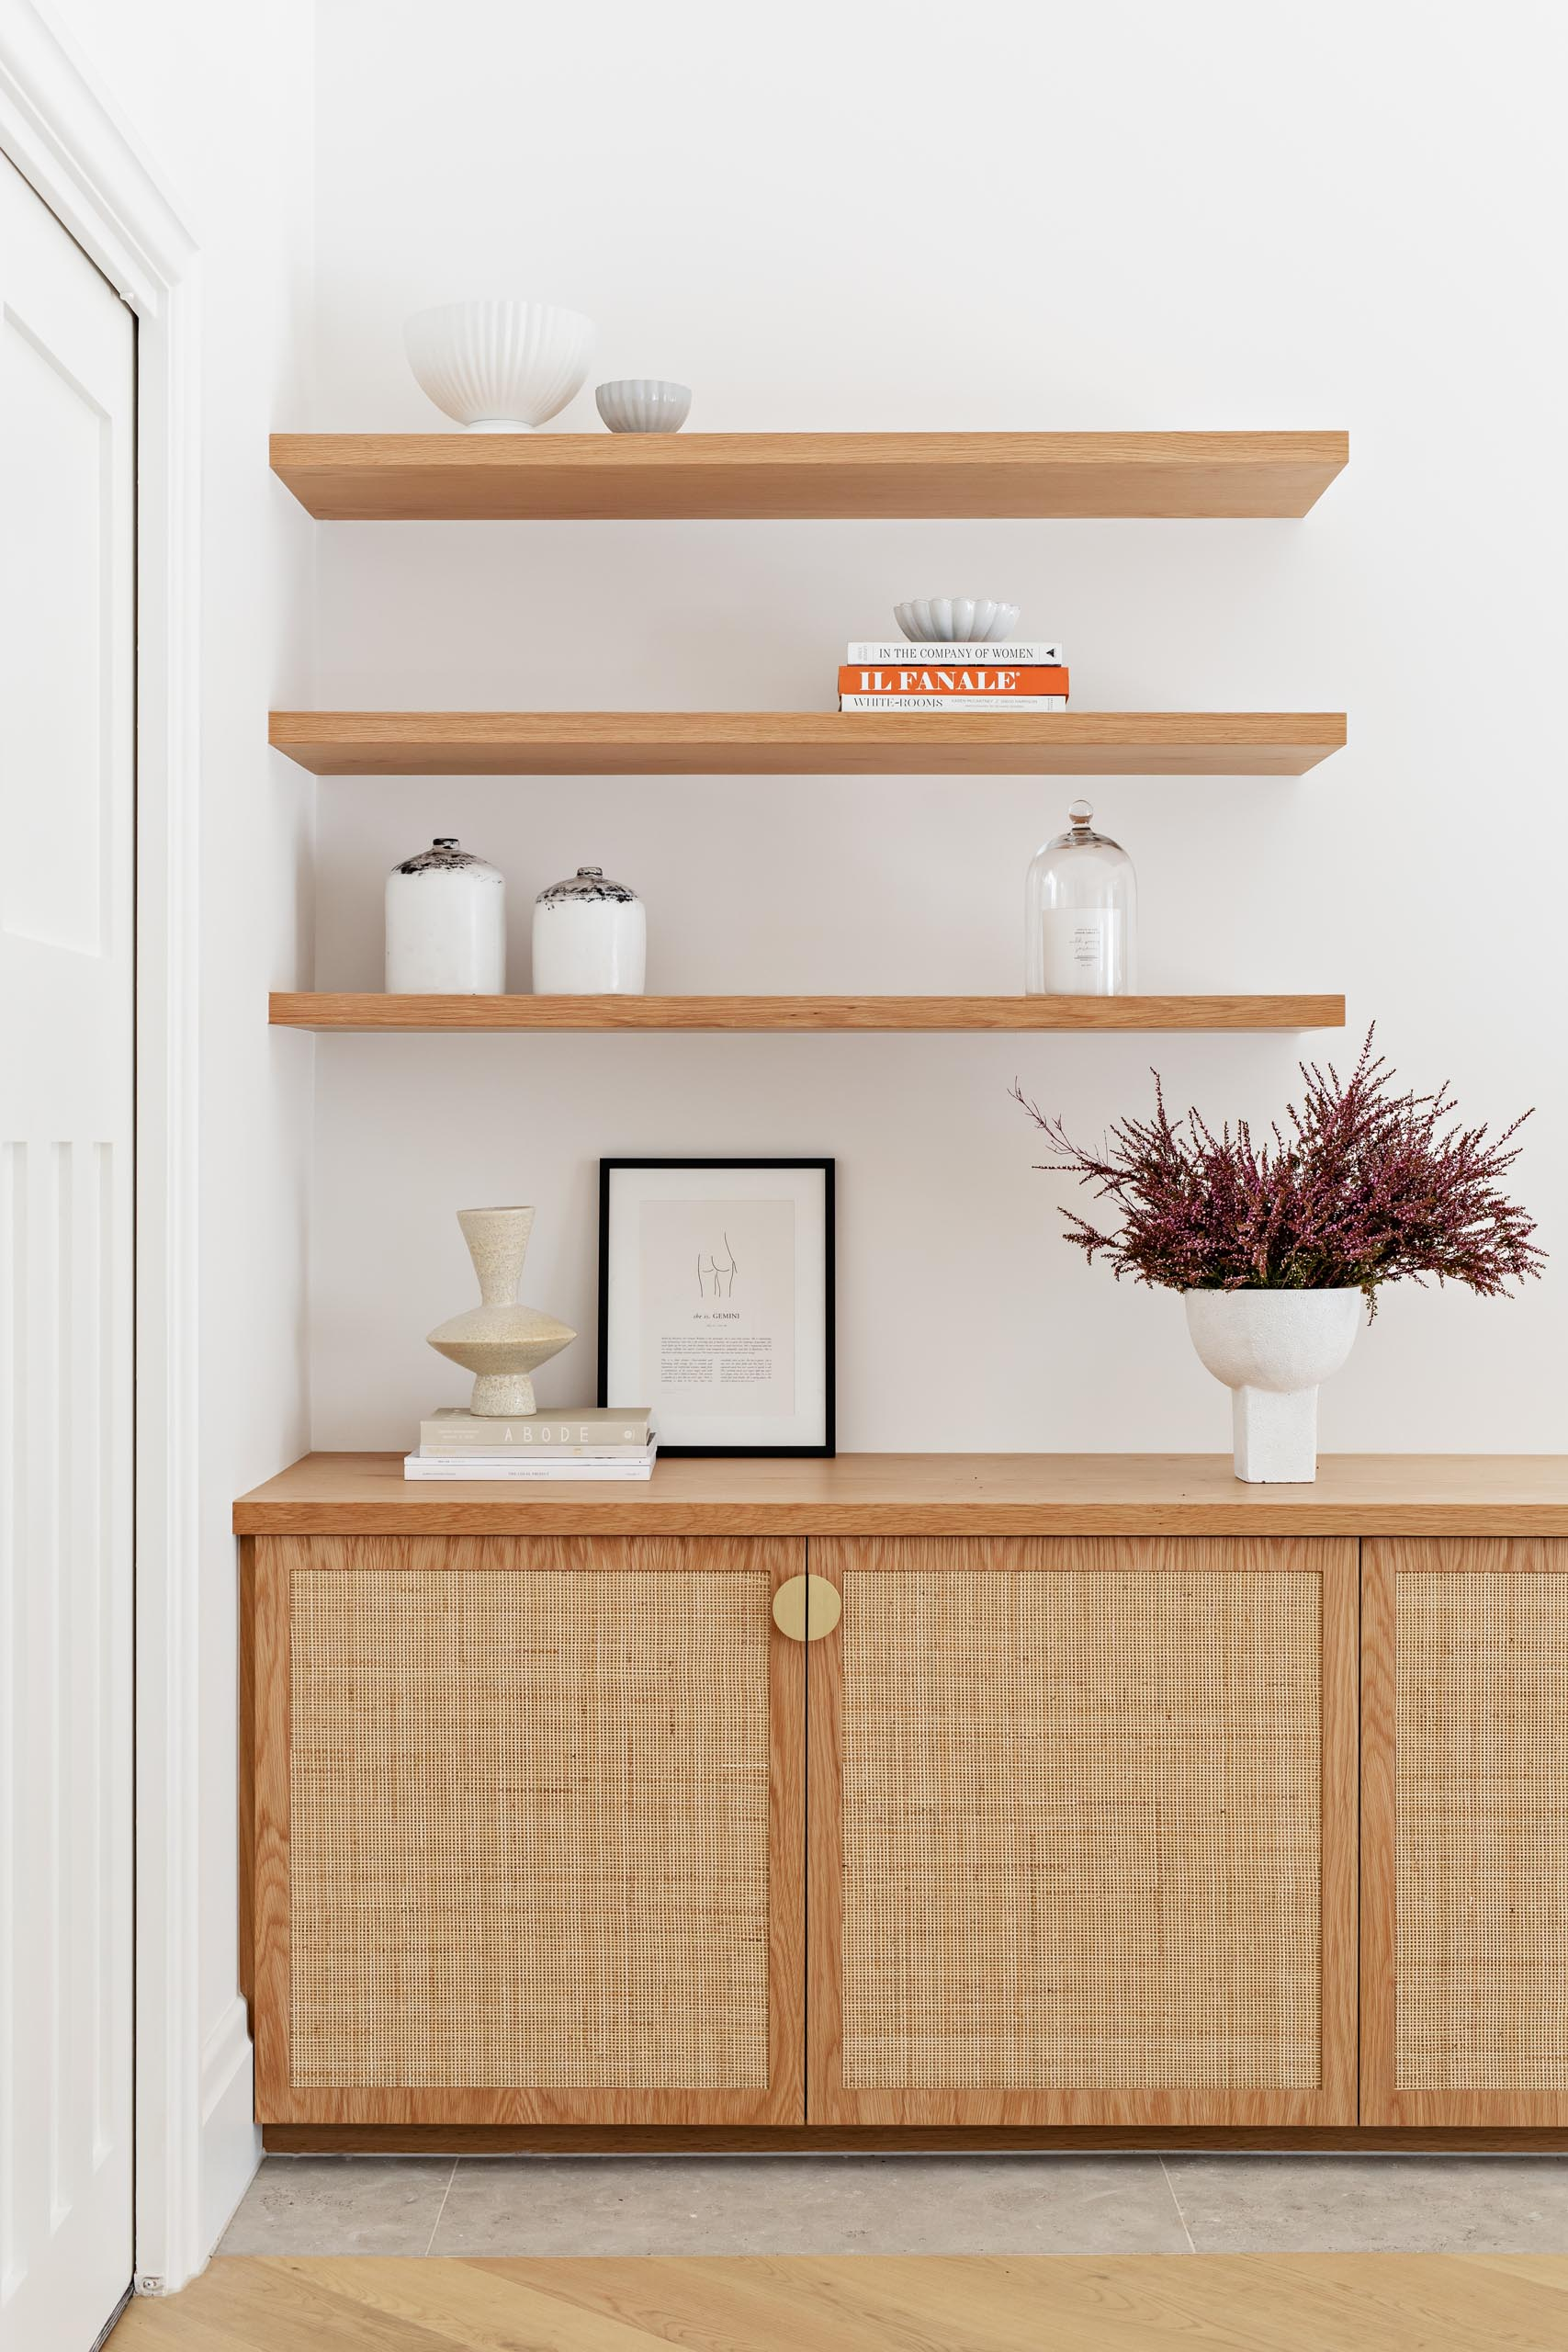 A custom oak and rattan low cabinet, with floating wood shelves above.